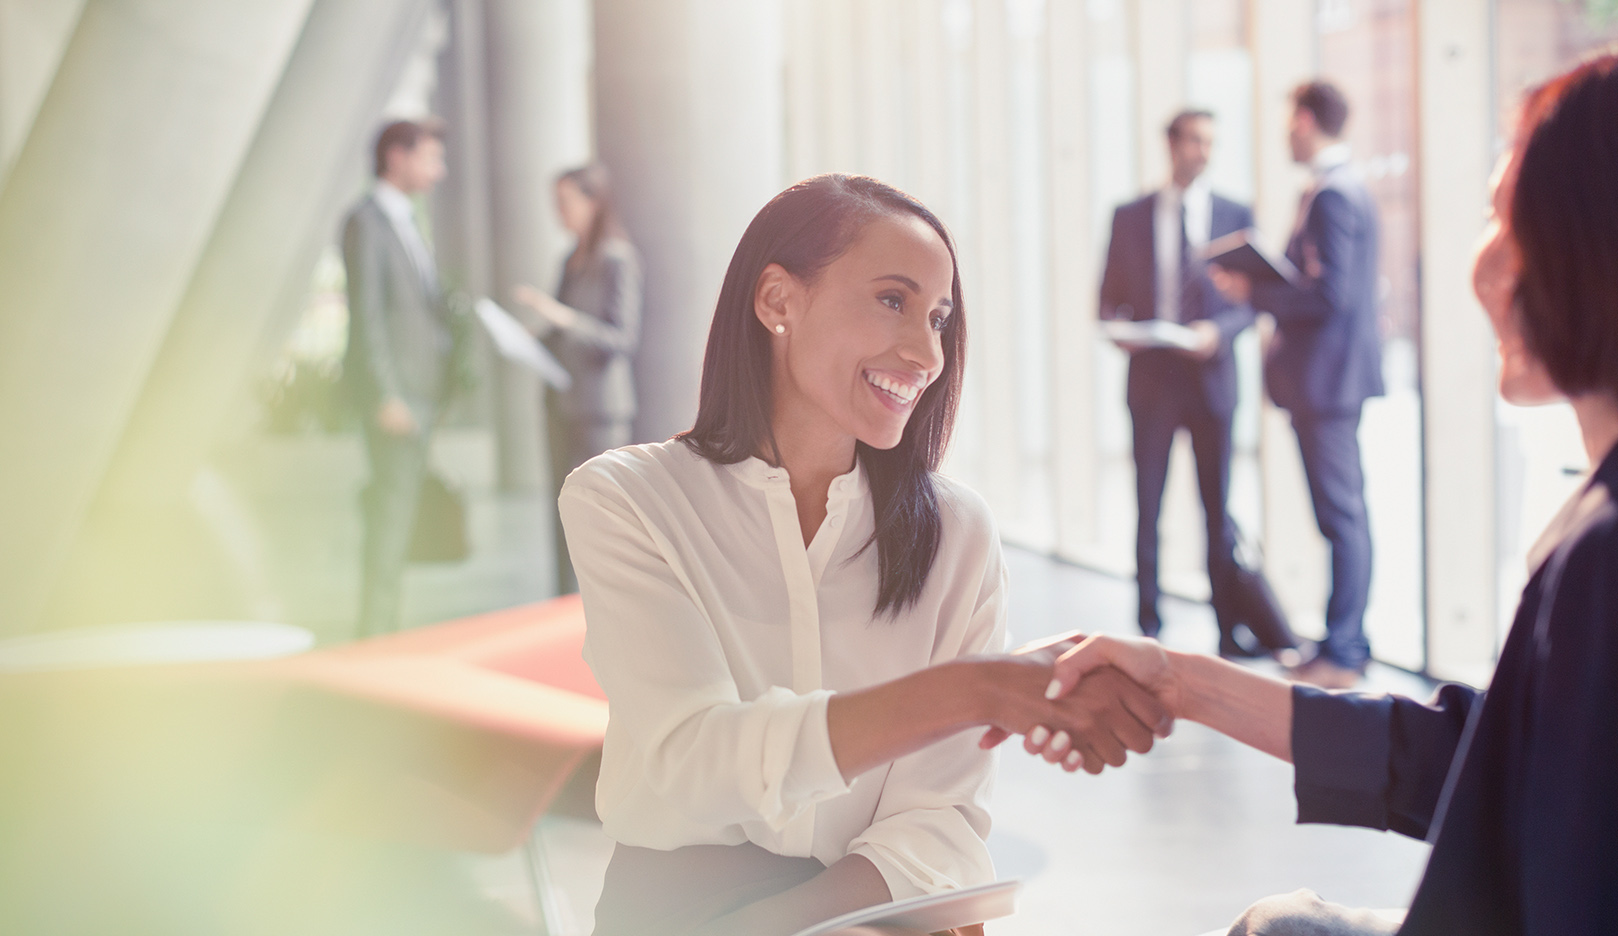 Women in business: optimising your contacts - Brought to you by NatWest